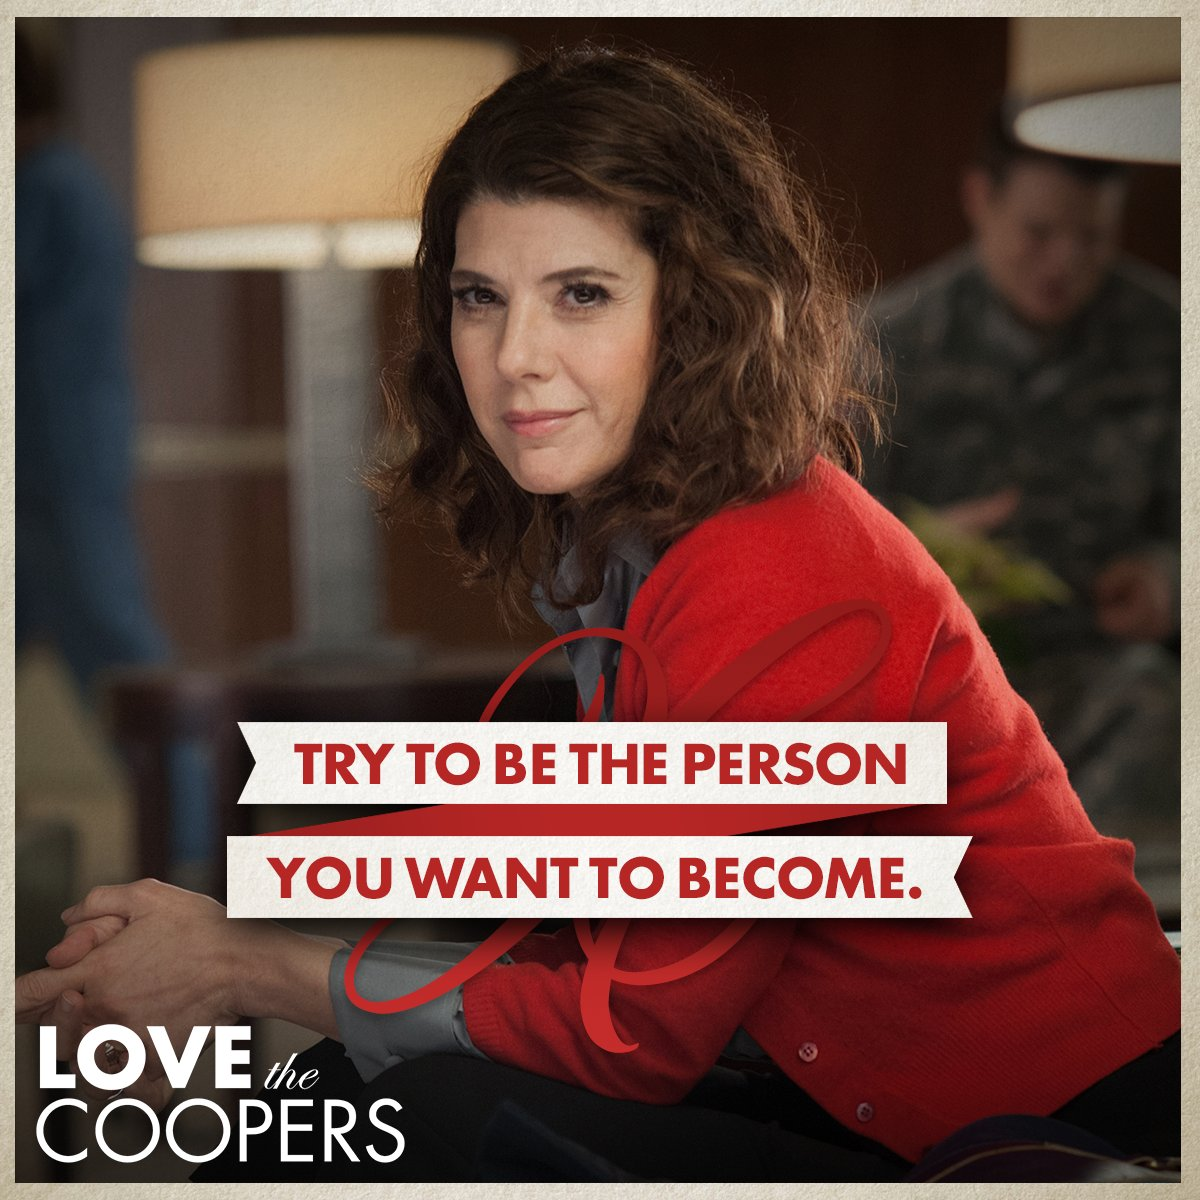 Sometimes the easiest changes to make are the hardest to realize. #LoveTheCoopers https://t.co/SMVTTicJUE